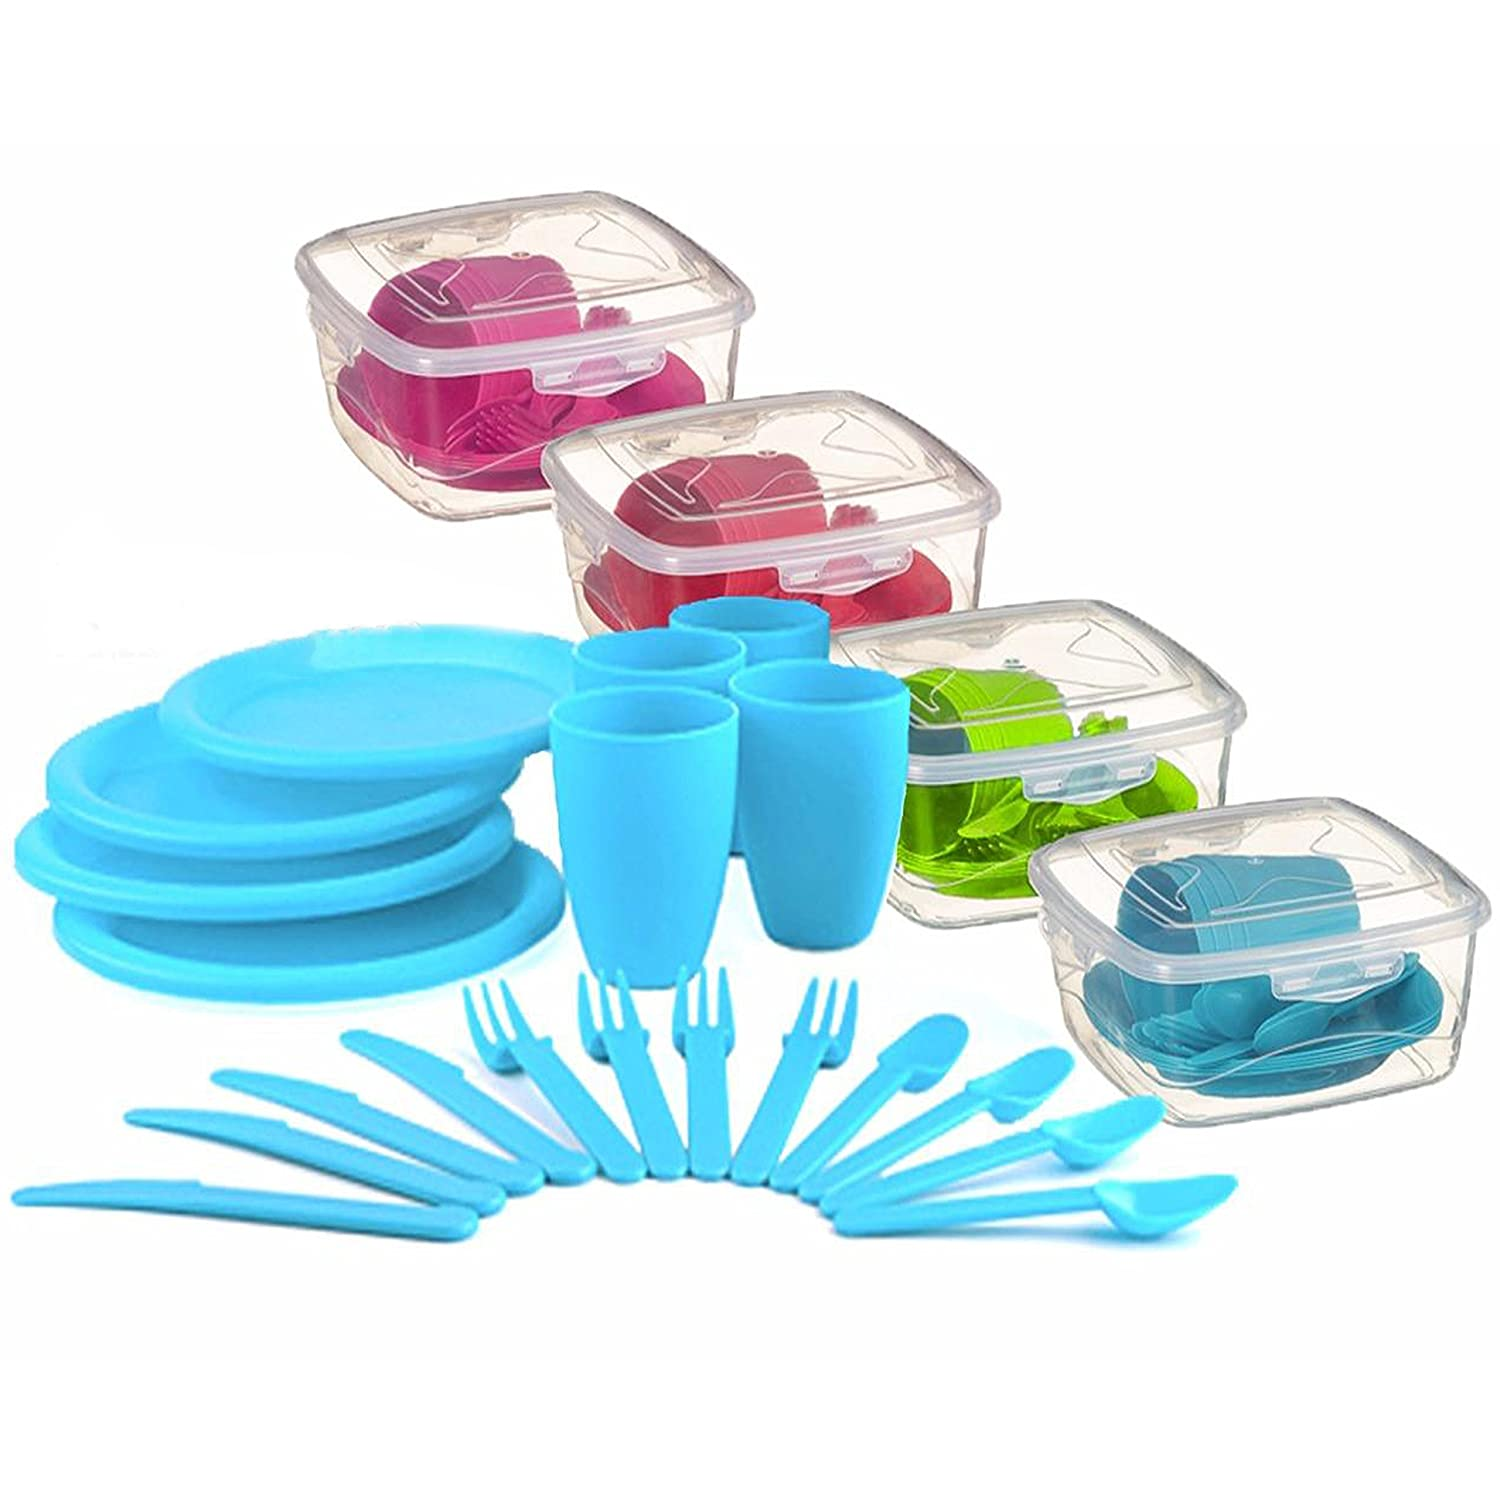 21 Piece Plastic Picnic Camping Party Dinner Plate Mug Cutlery Set Storage Box MTS